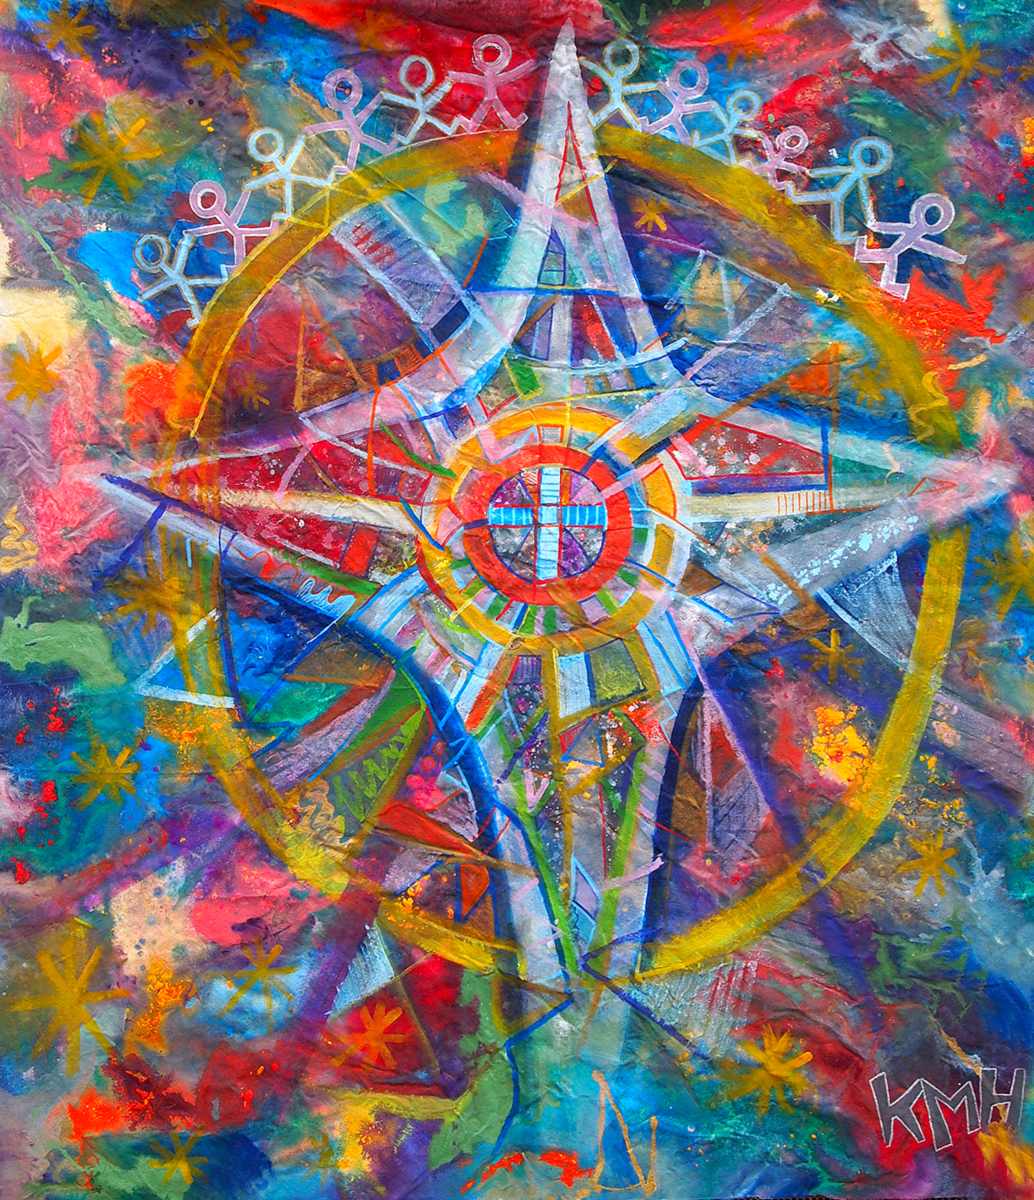 """NORTH STAR""  58 x 60 inches (custom)  Acrylic & Mixed Media on Raw, Un-stretched Canvas   SOLD"